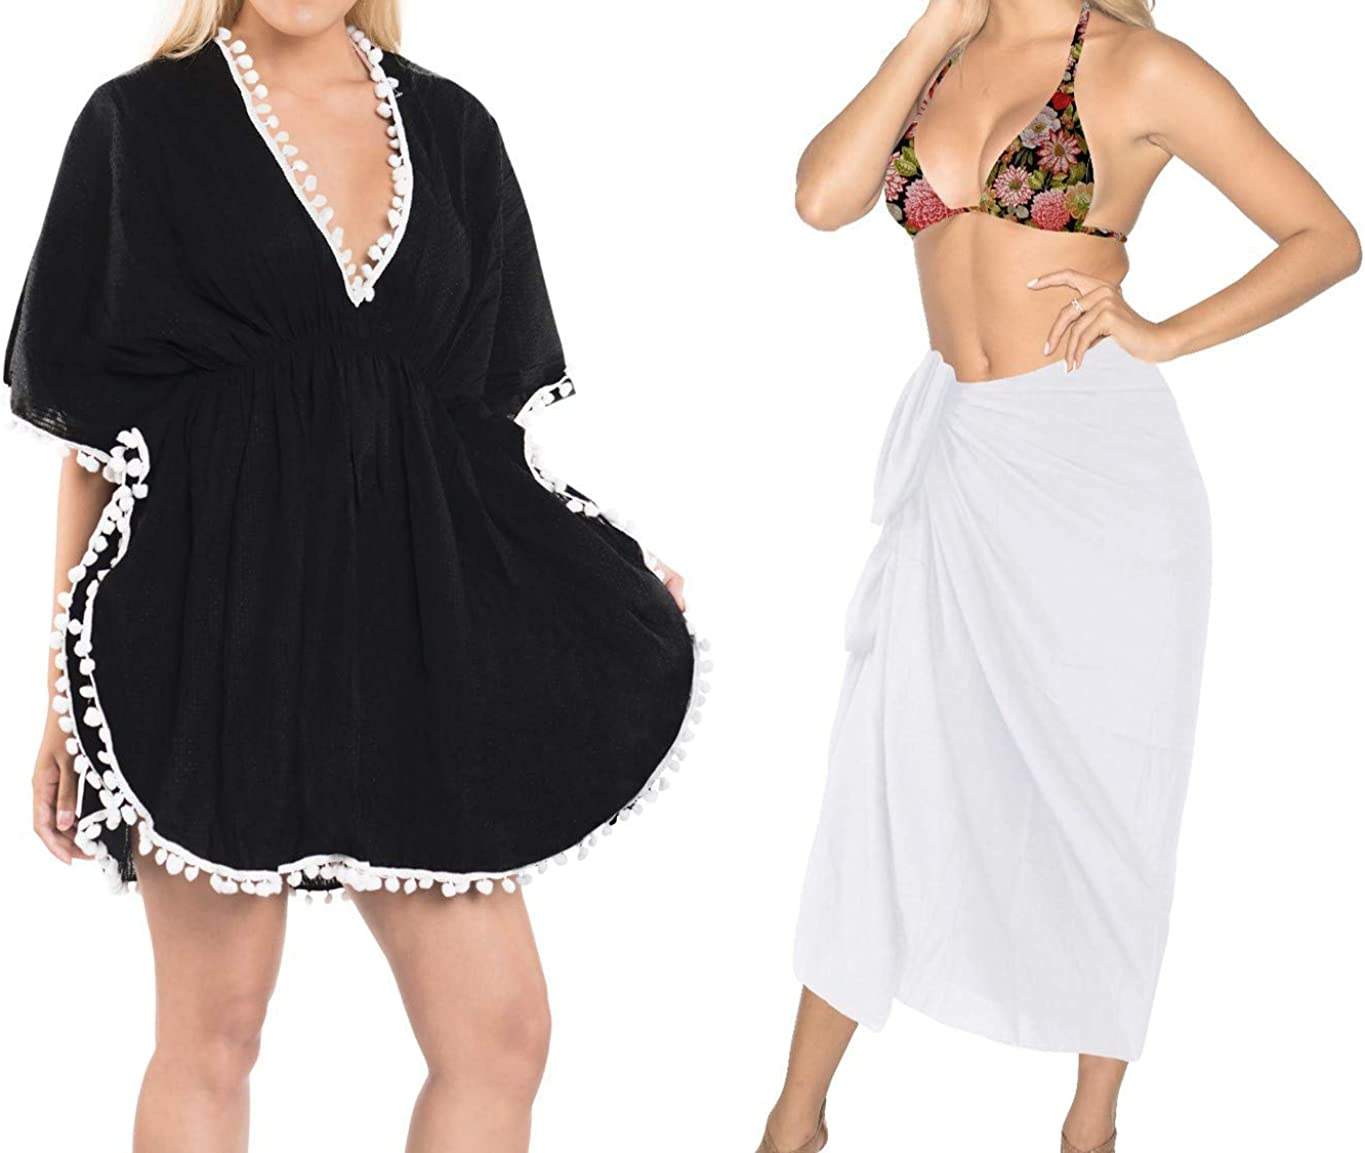 LA LEELA Womens Bathing Suit Cover Ups V Neck Beach Dress Sheer Cotton Swimsuit Front Tie Kimono Beach Cover up Wrap Pareo Work from Home Clothes Women Pack of 2